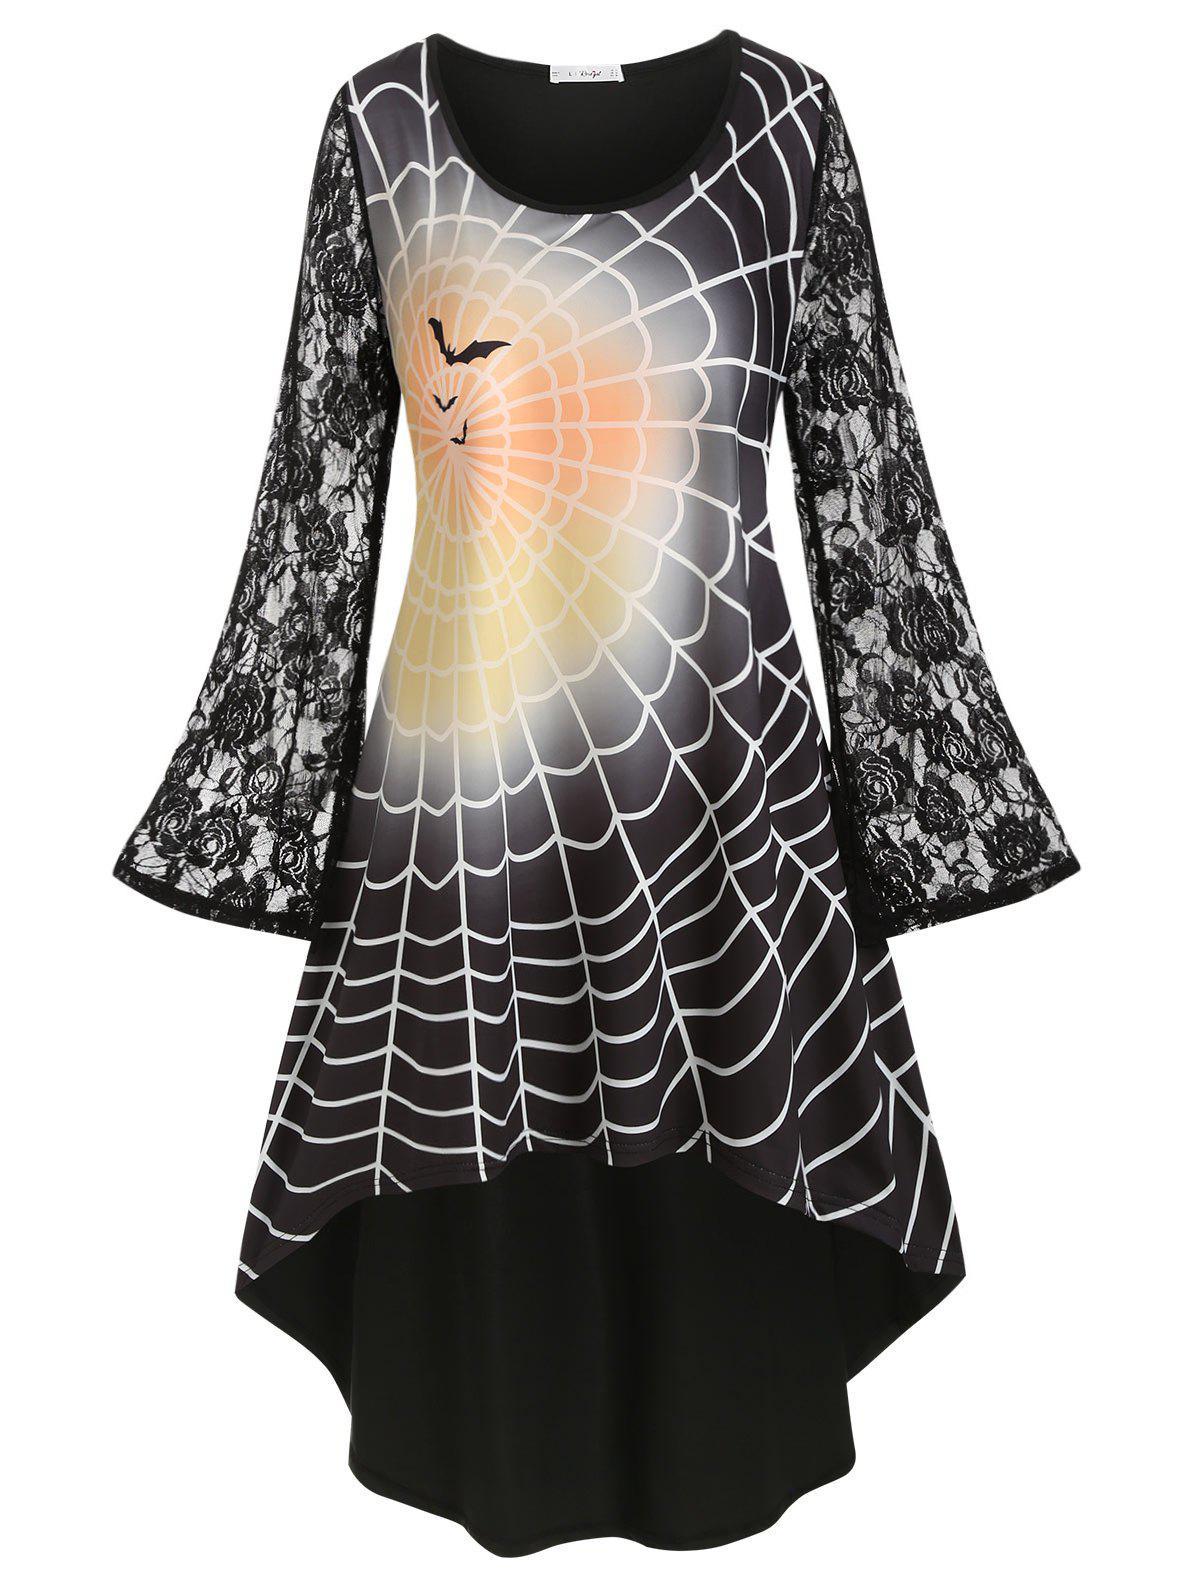 Plus Size Halloween Lace Sleeve Spider Web Print Dress - BLACK 1X